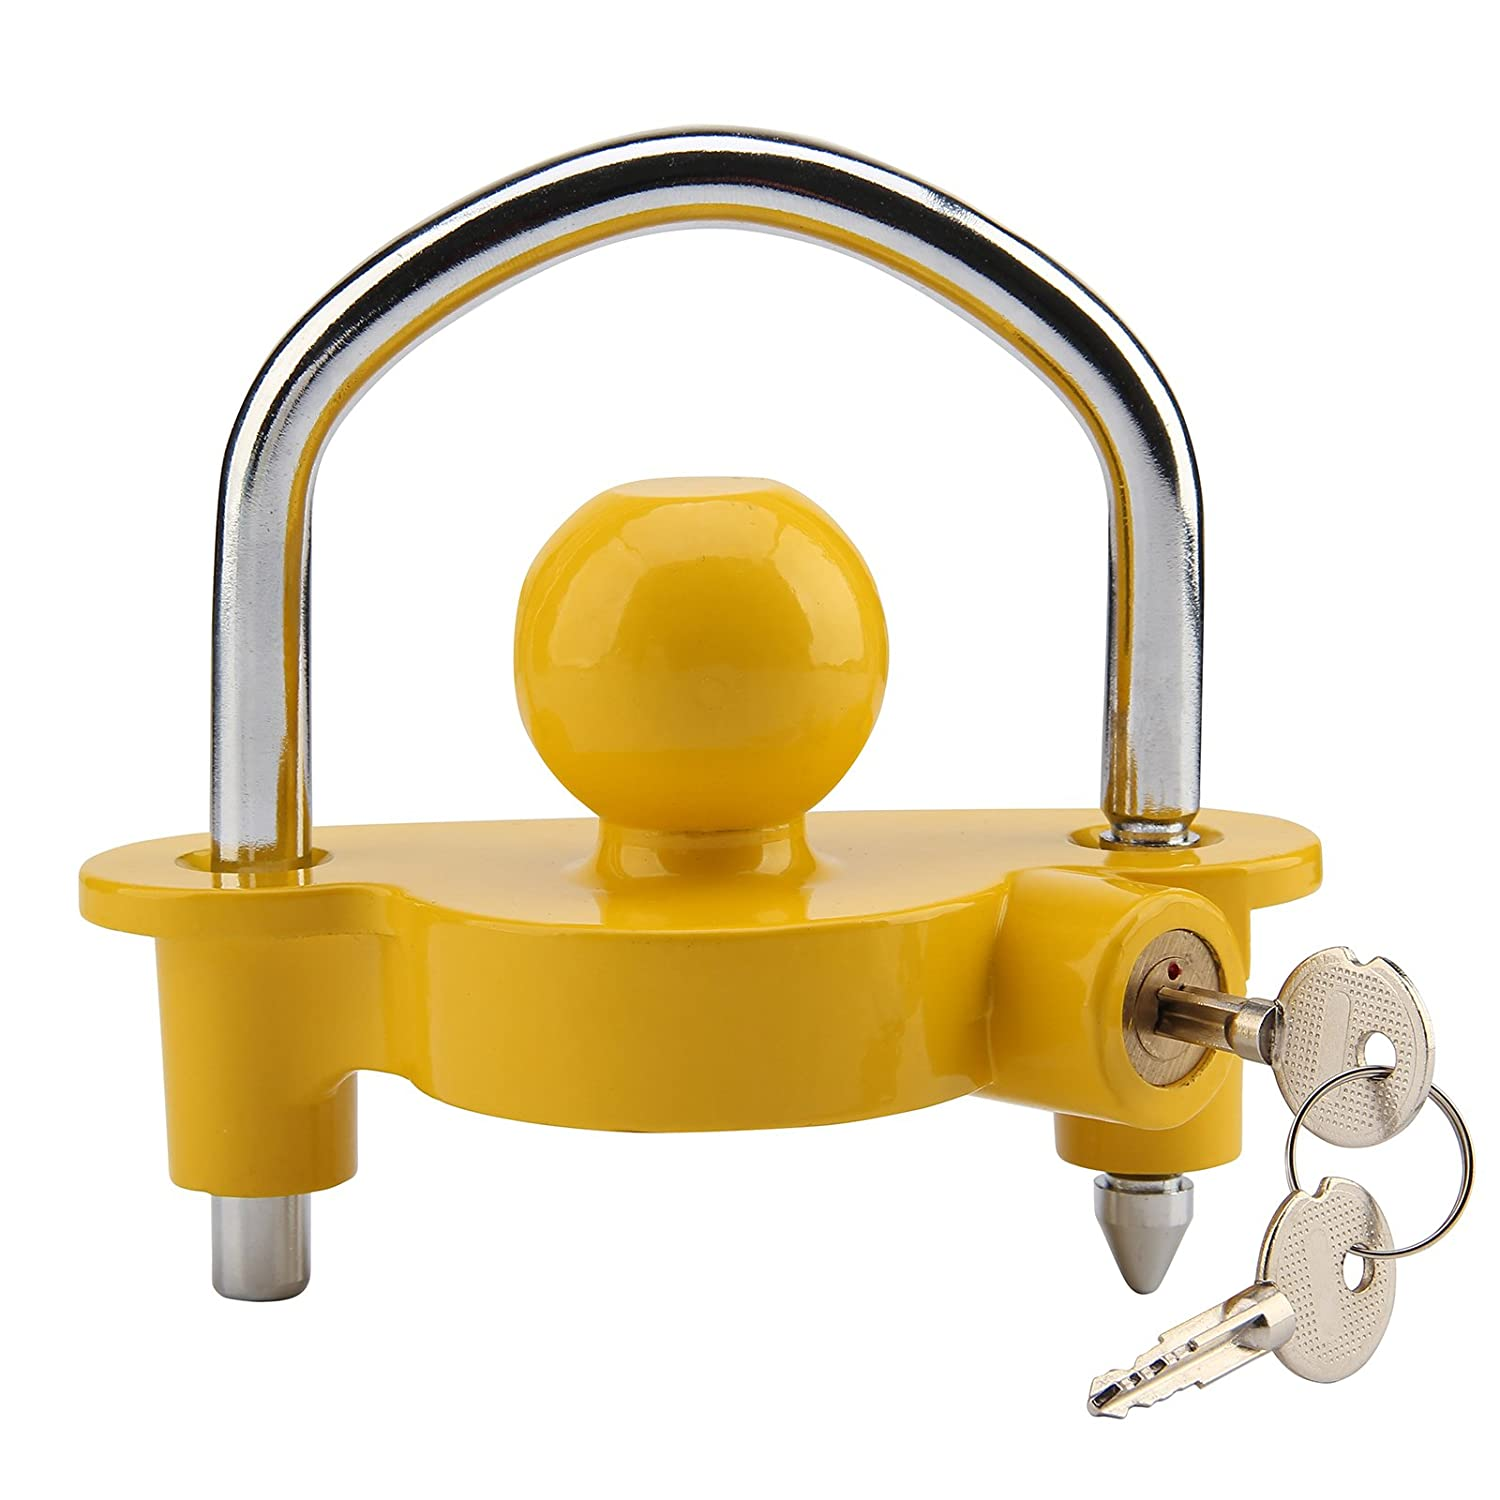 MultiWare Trailer Ball Lock Heavy Duty Ball Tow Hitch Lock & Keys for Towing Caravan/Trailer Security OEM